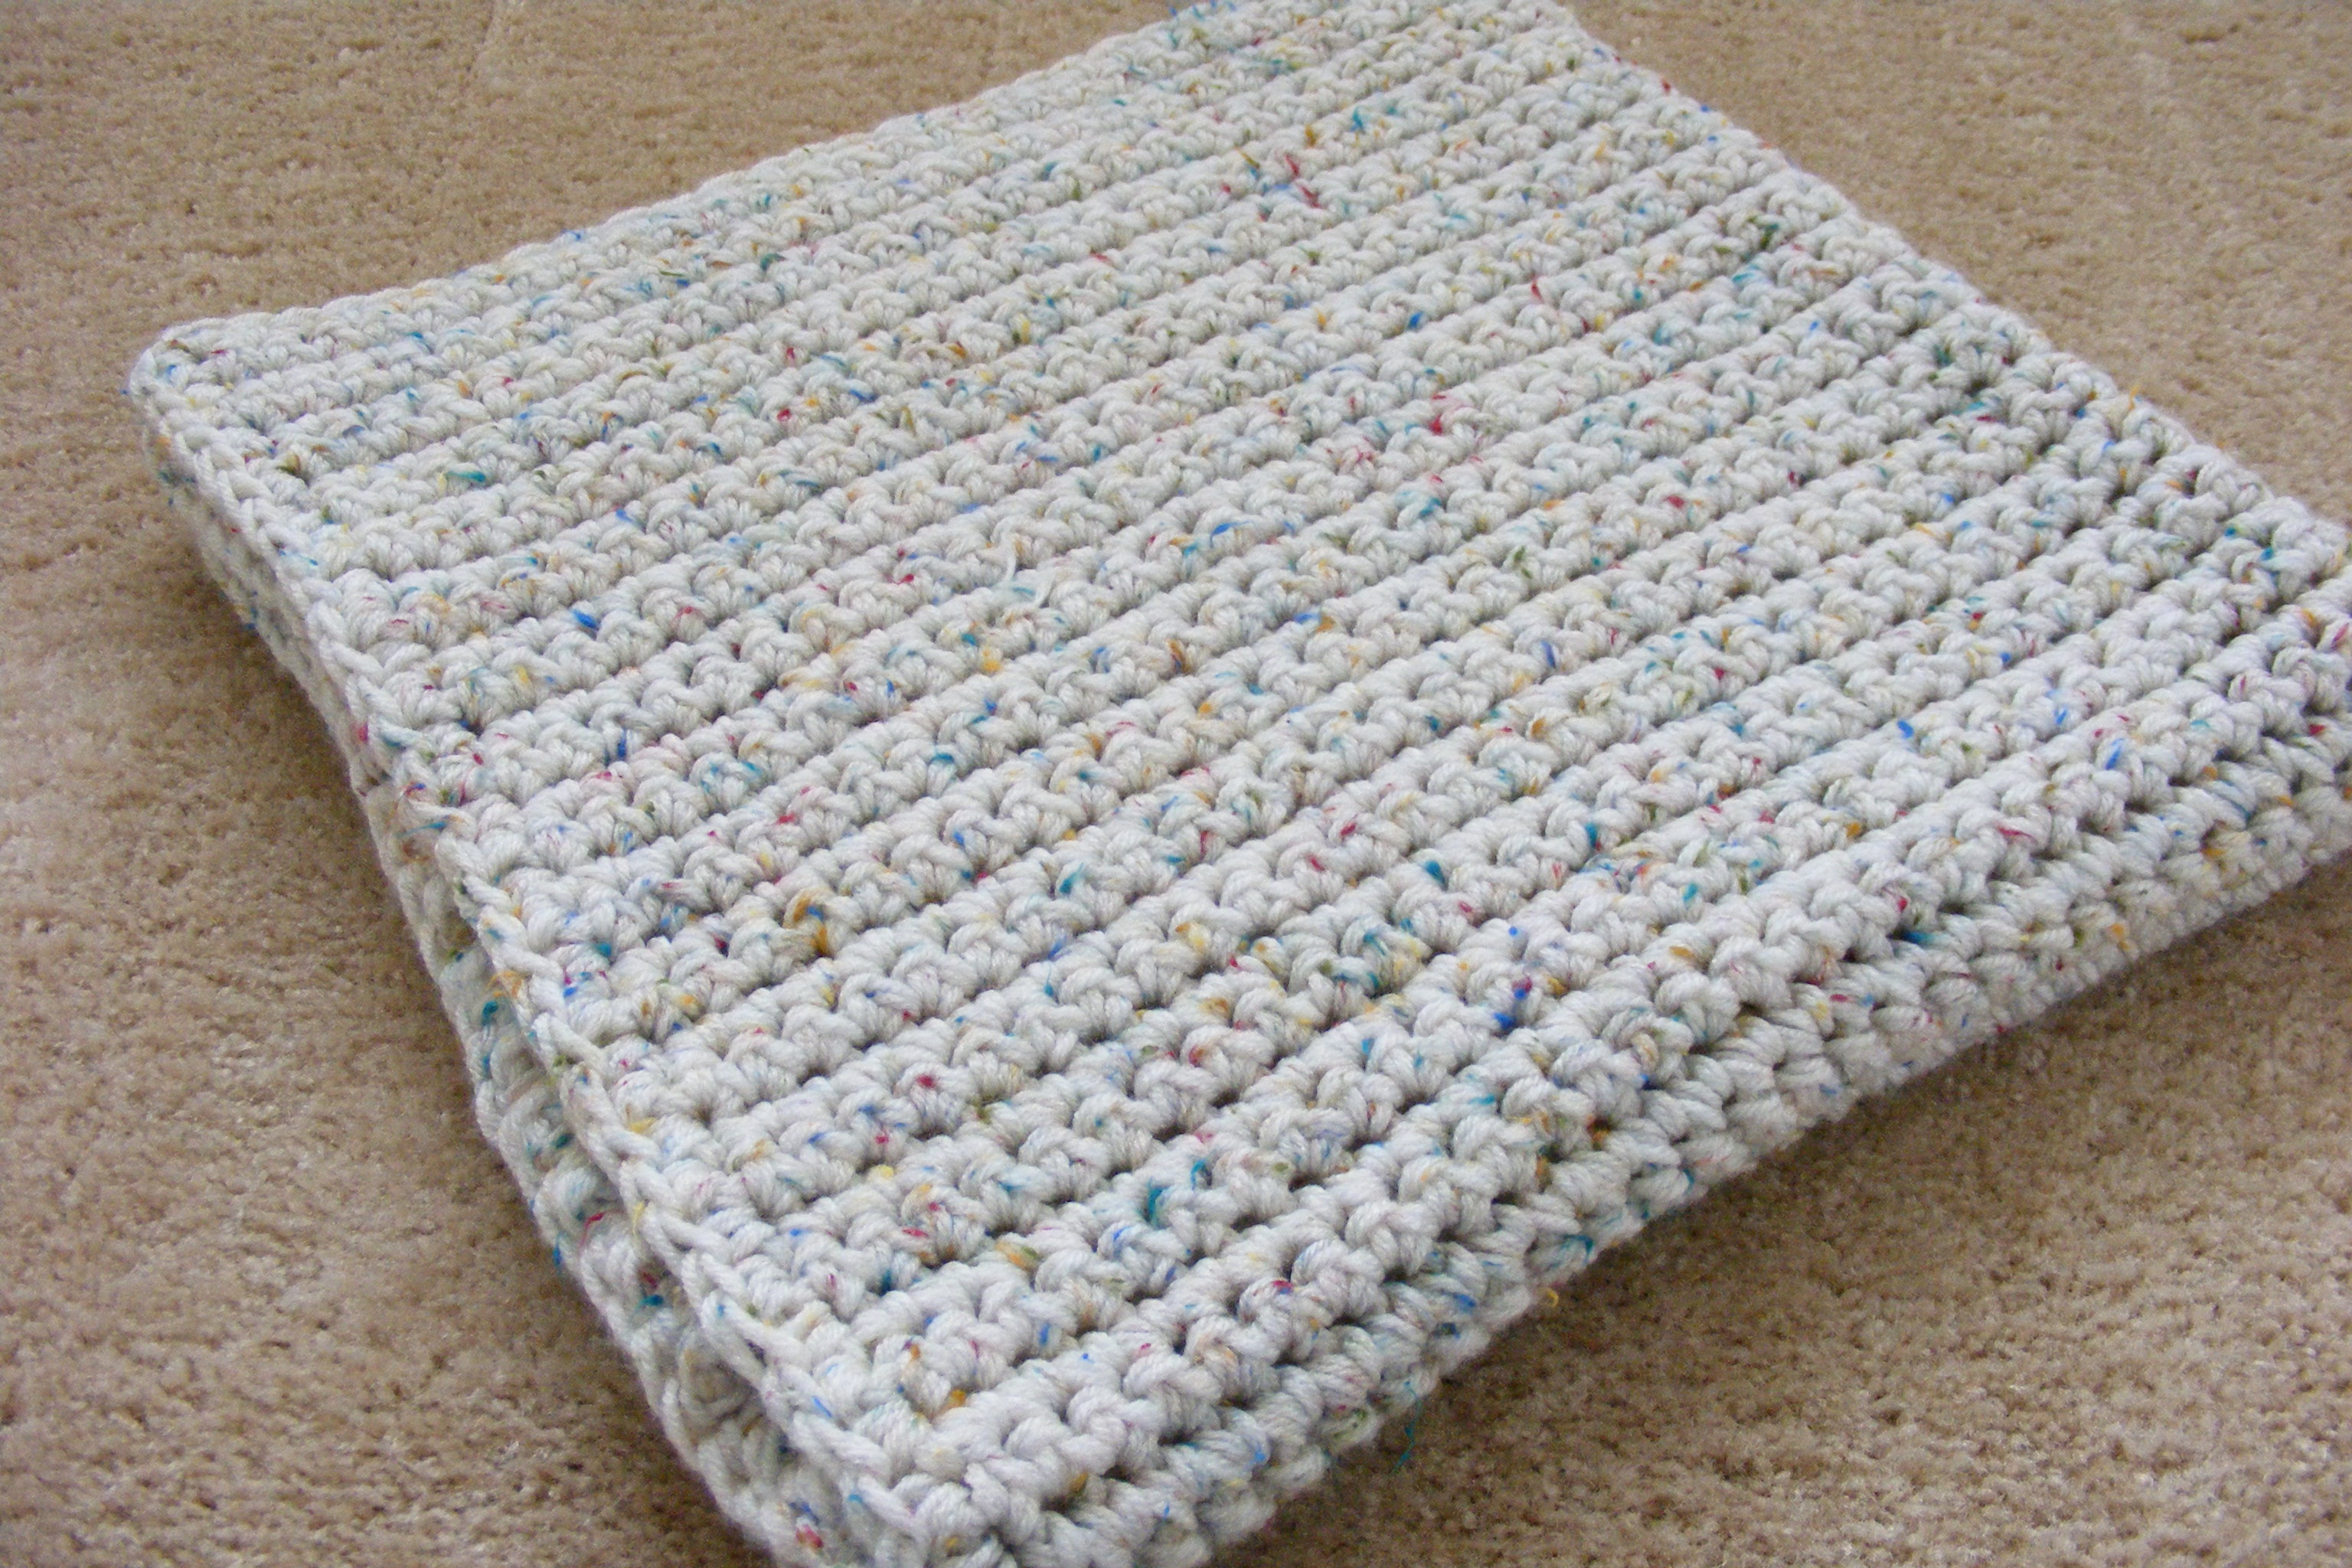 Easy Crochet Patterns For Baby Blankets : BABY BLANKET CROCHET EASY PATTERN FREE PATTERNS